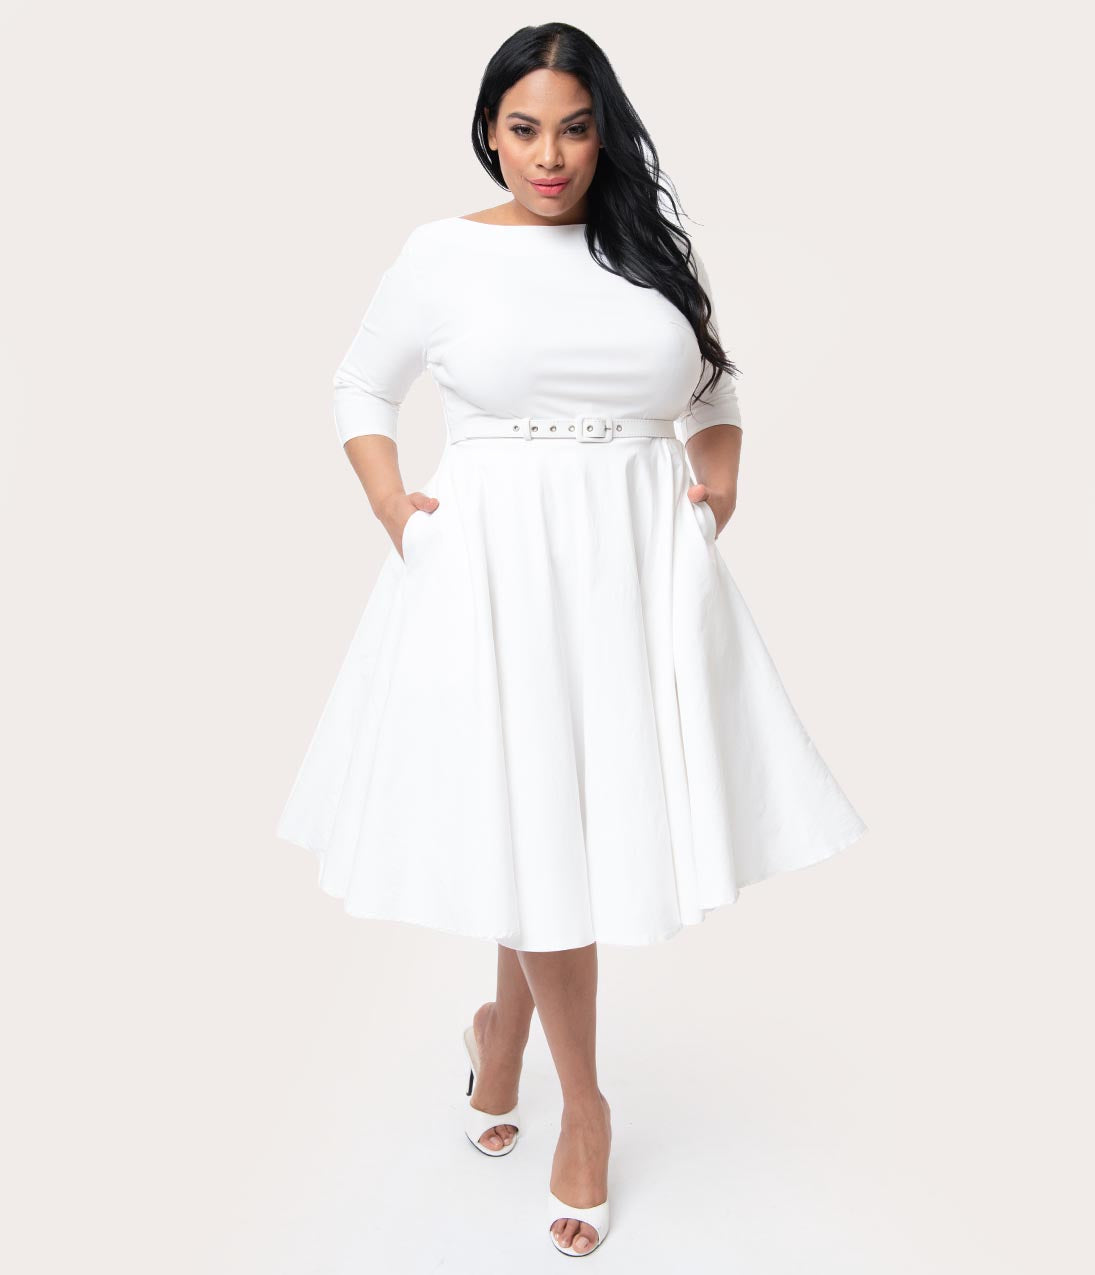 500 Vintage Style Dresses for Sale | Vintage Inspired Dresses Unique Vintage Plus Size 1950S Style Ivory Stretch Sleeved Devon Swing Dress $88.00 AT vintagedancer.com